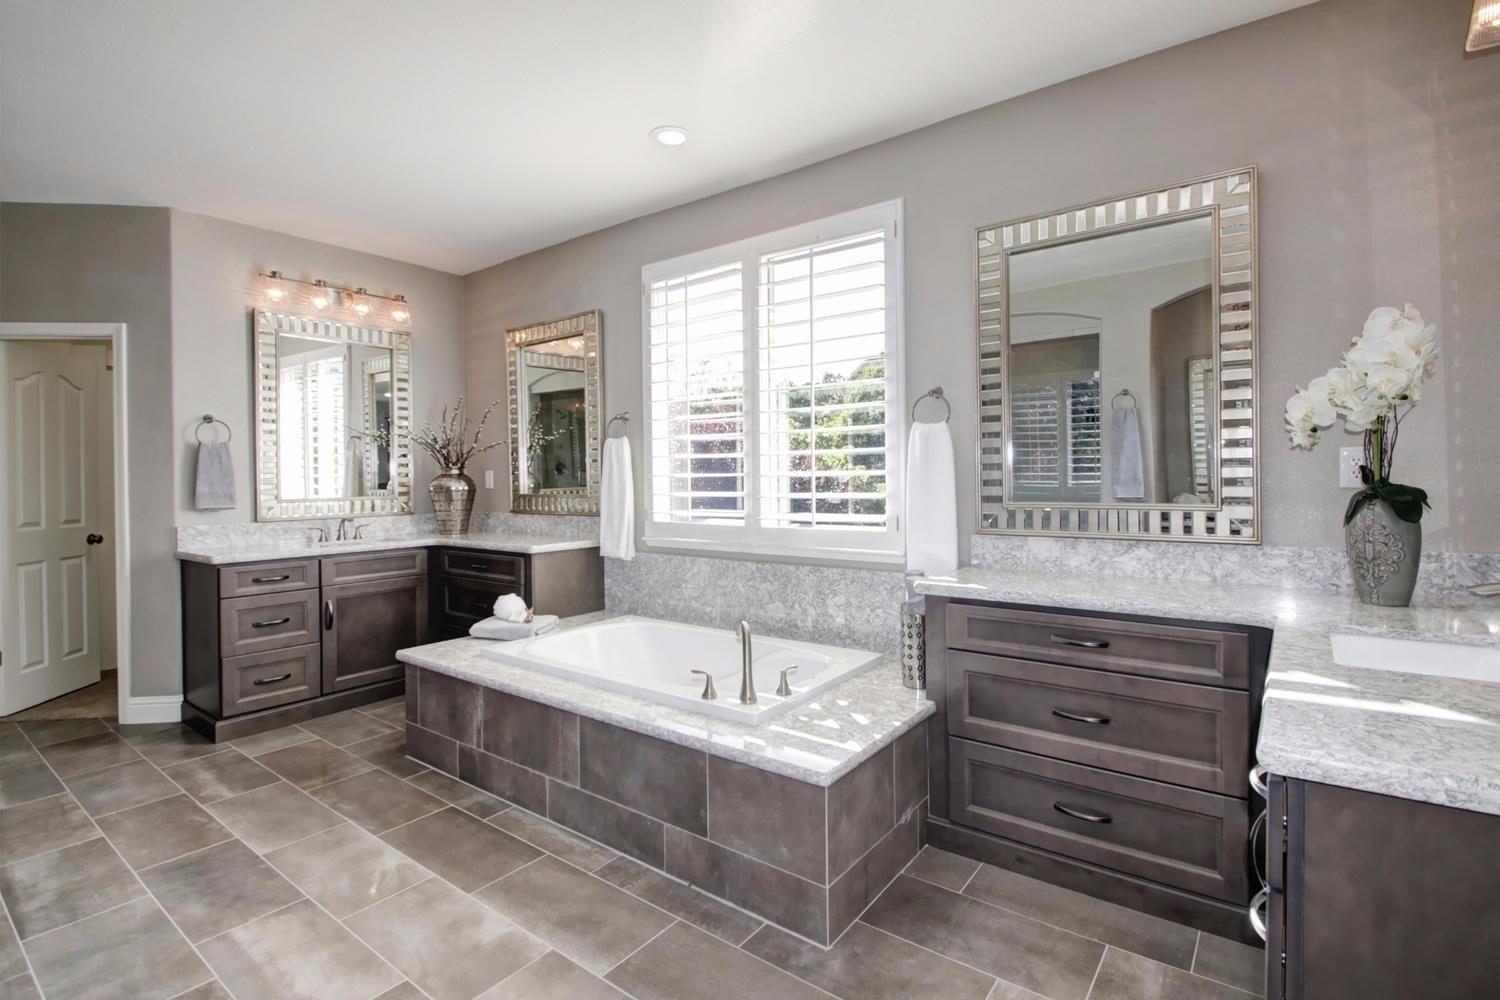 Master bath with tile bathtub, grey cabinet vanity and white counter